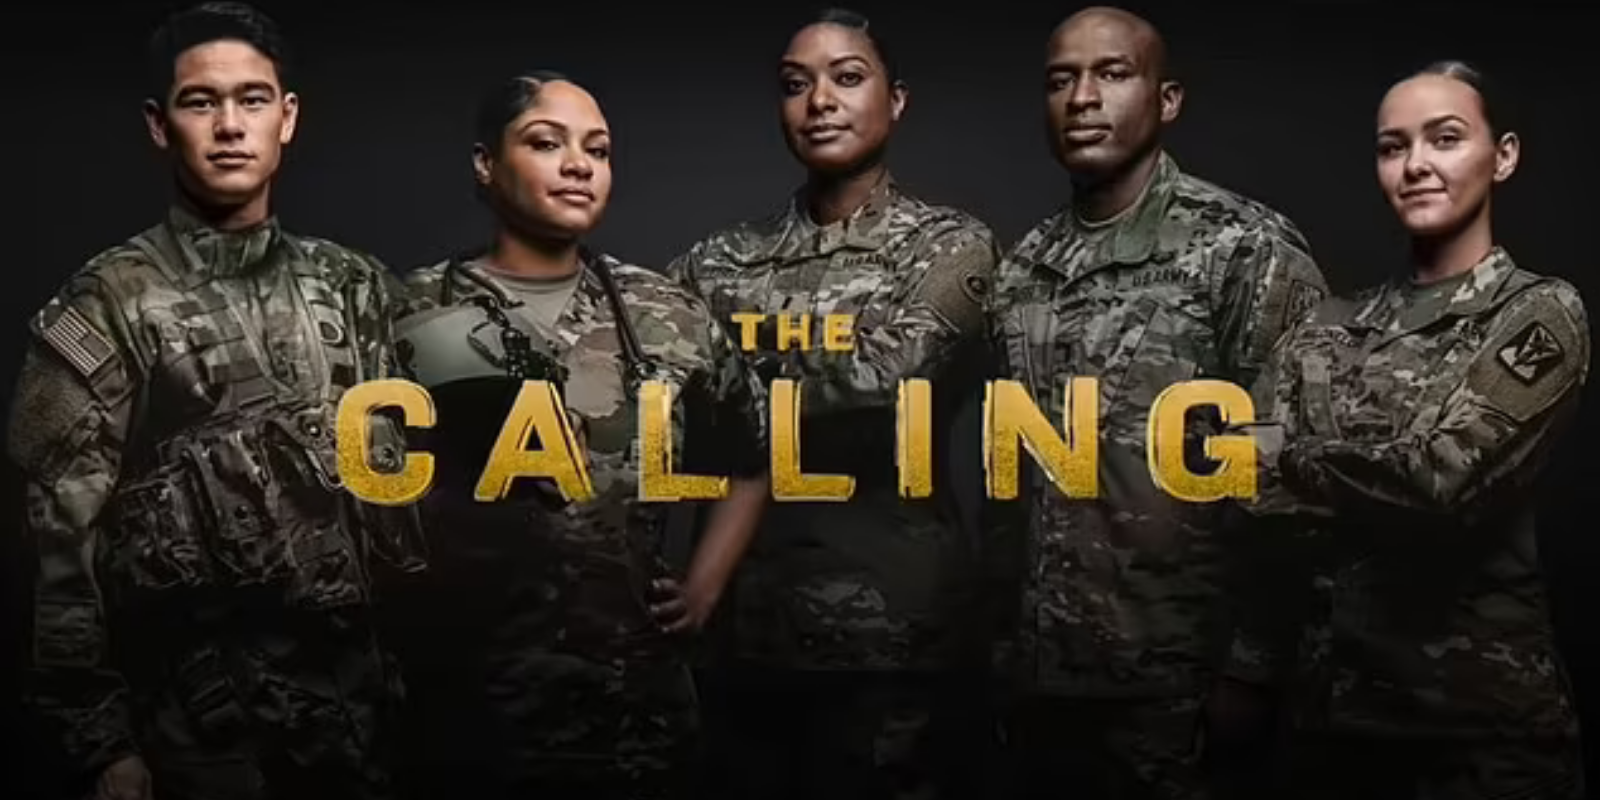 WATCH: The US Army has launched yet ANOTHER 'woke' recruitment ad